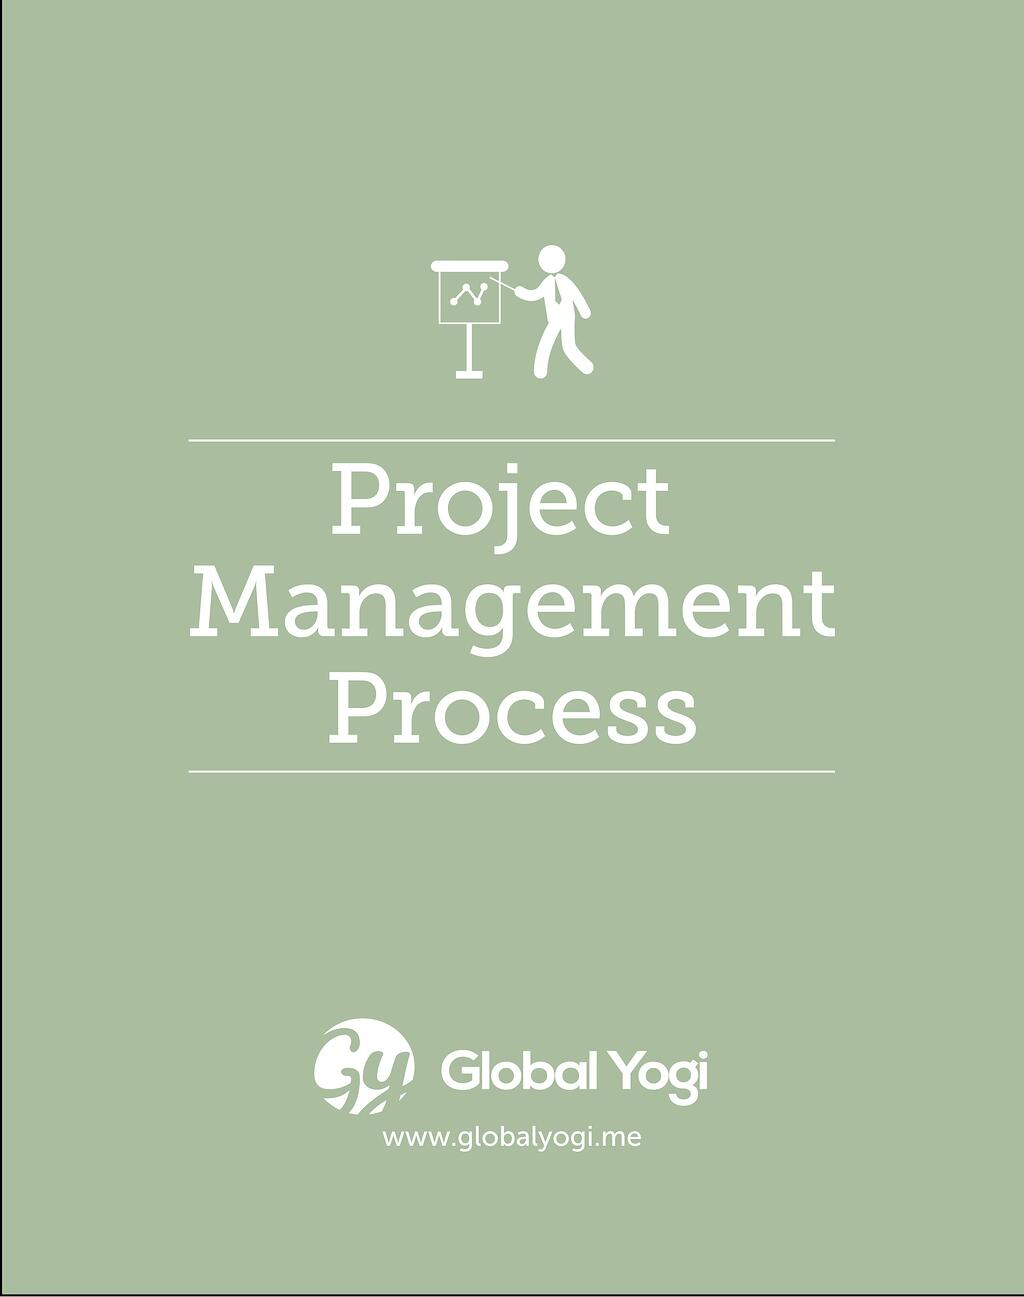 Project_Management_Process